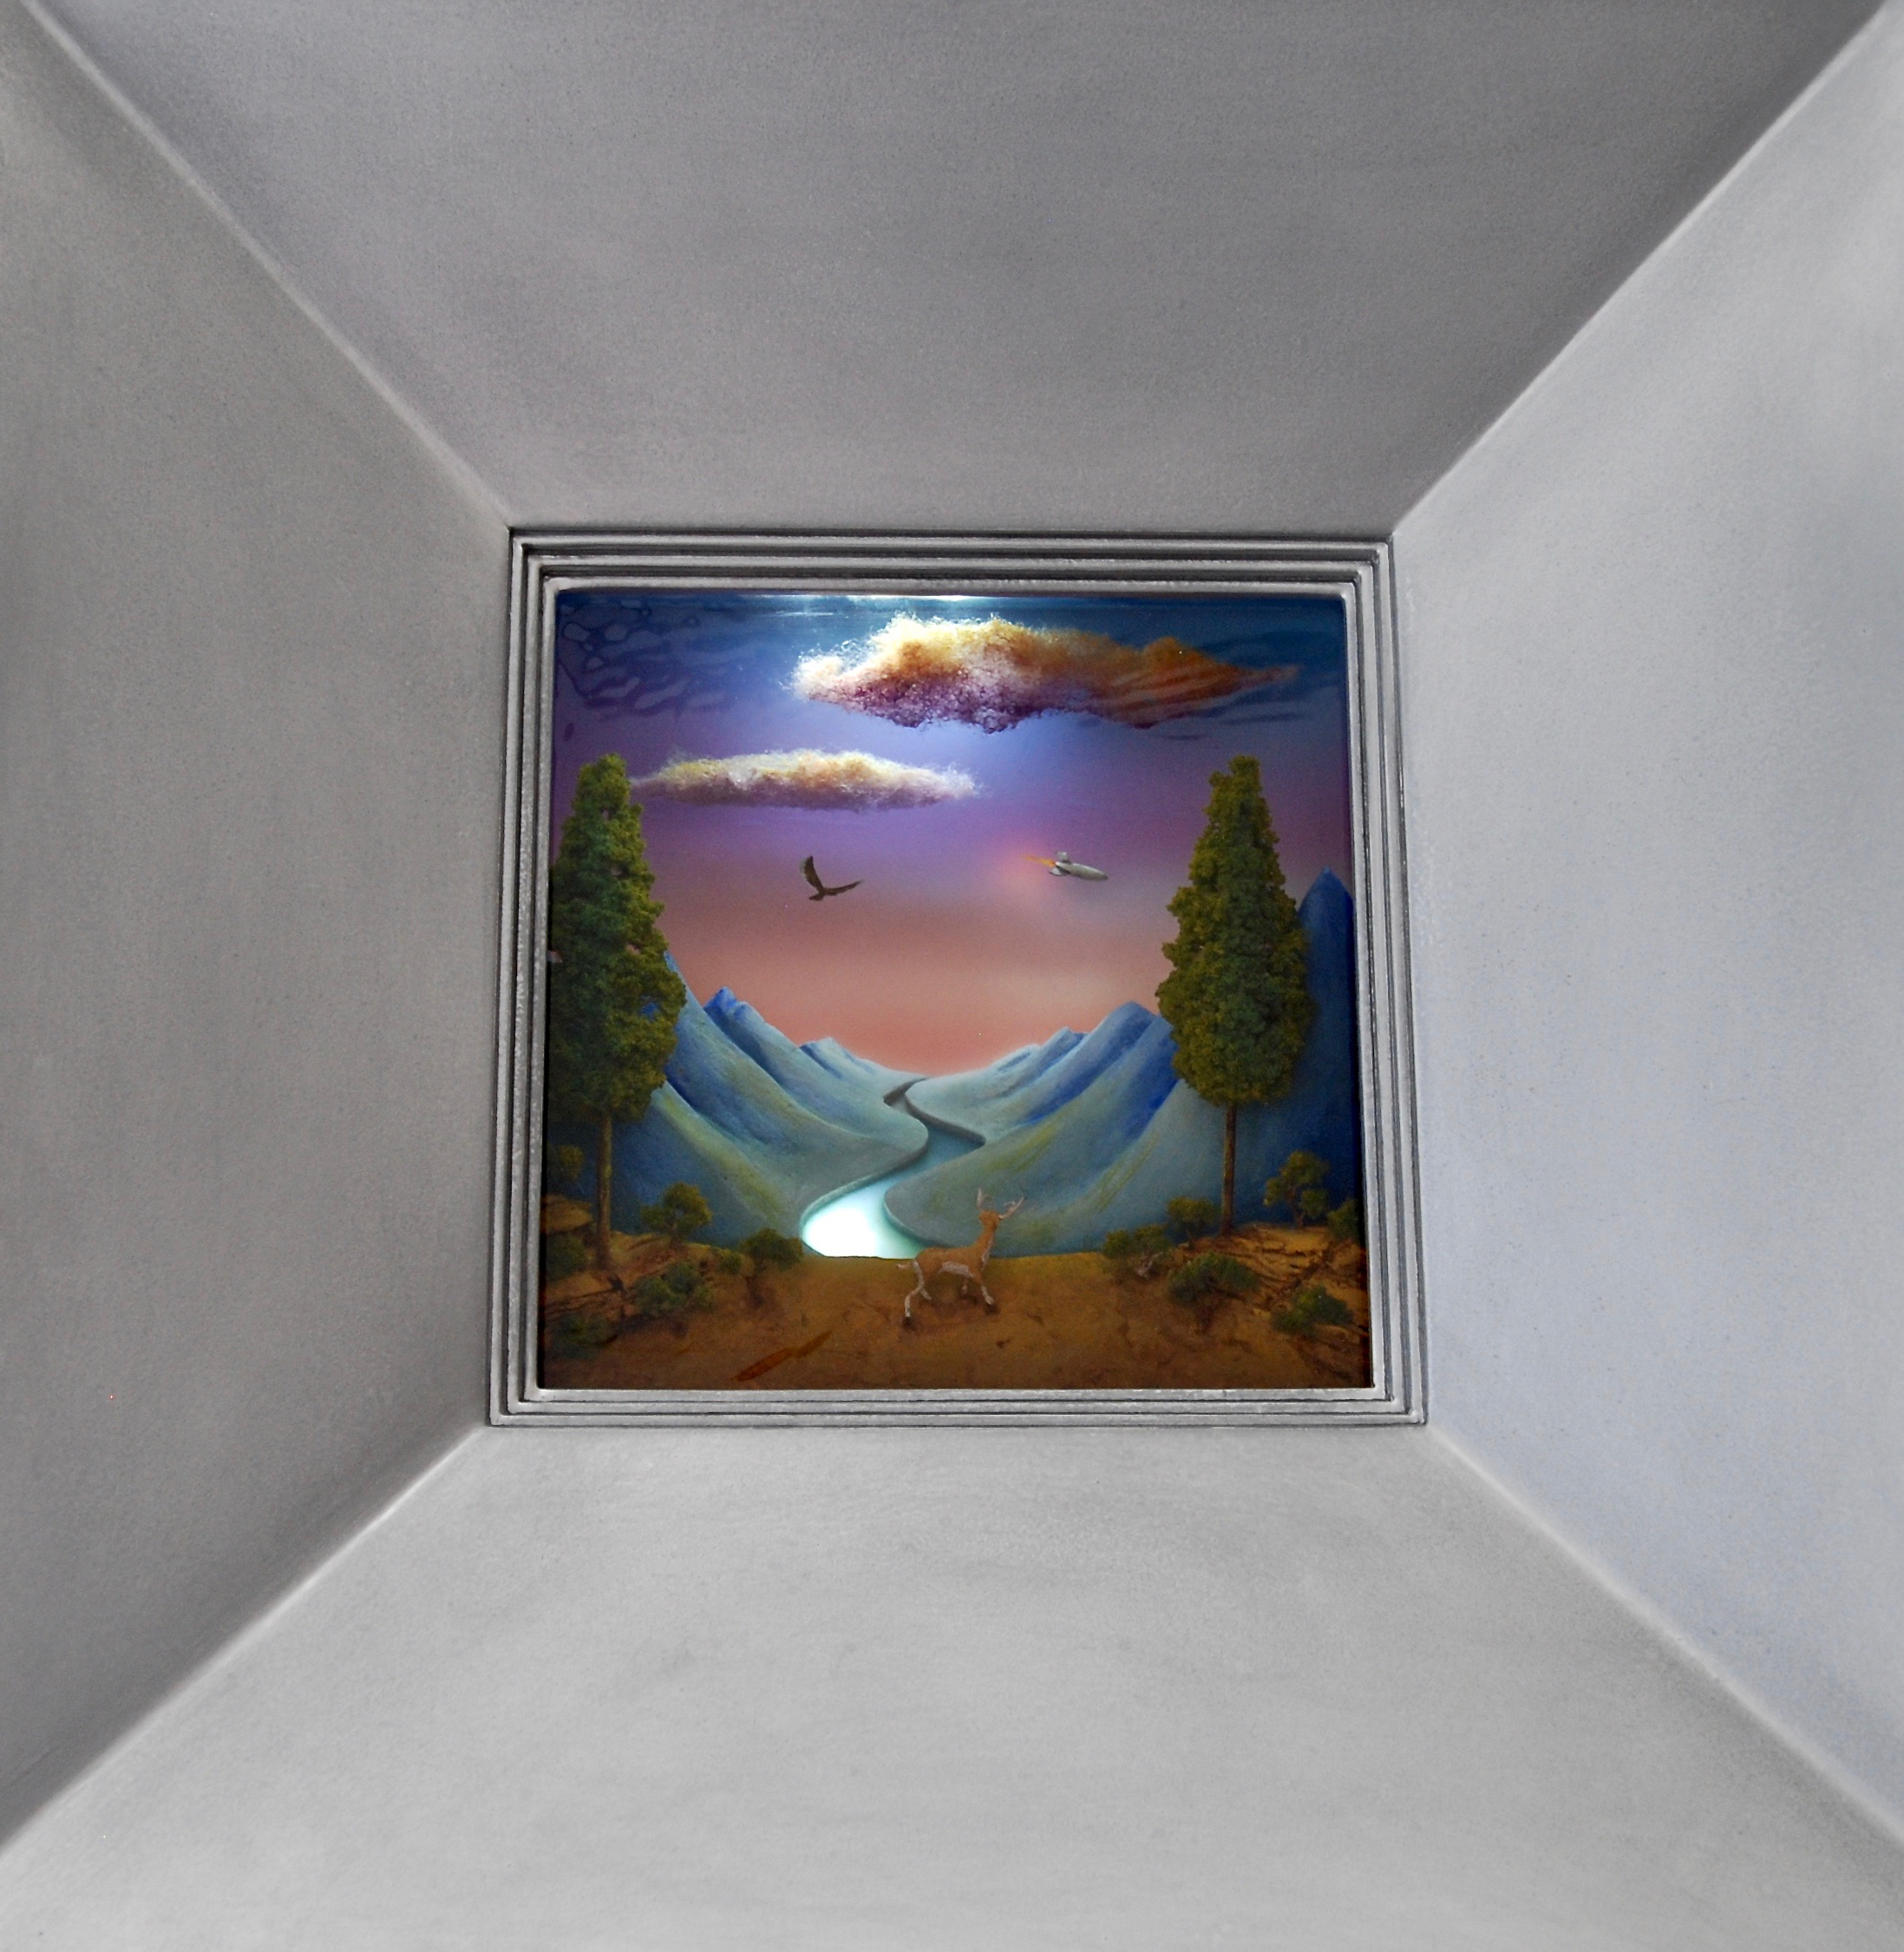 """Thomas Coffin - Vacation in Berchtesgaden, 15""""h x 15""""w x 5 3/4""""d, mixed media 3-d diorama encased in acrylic resin, wood frame"""